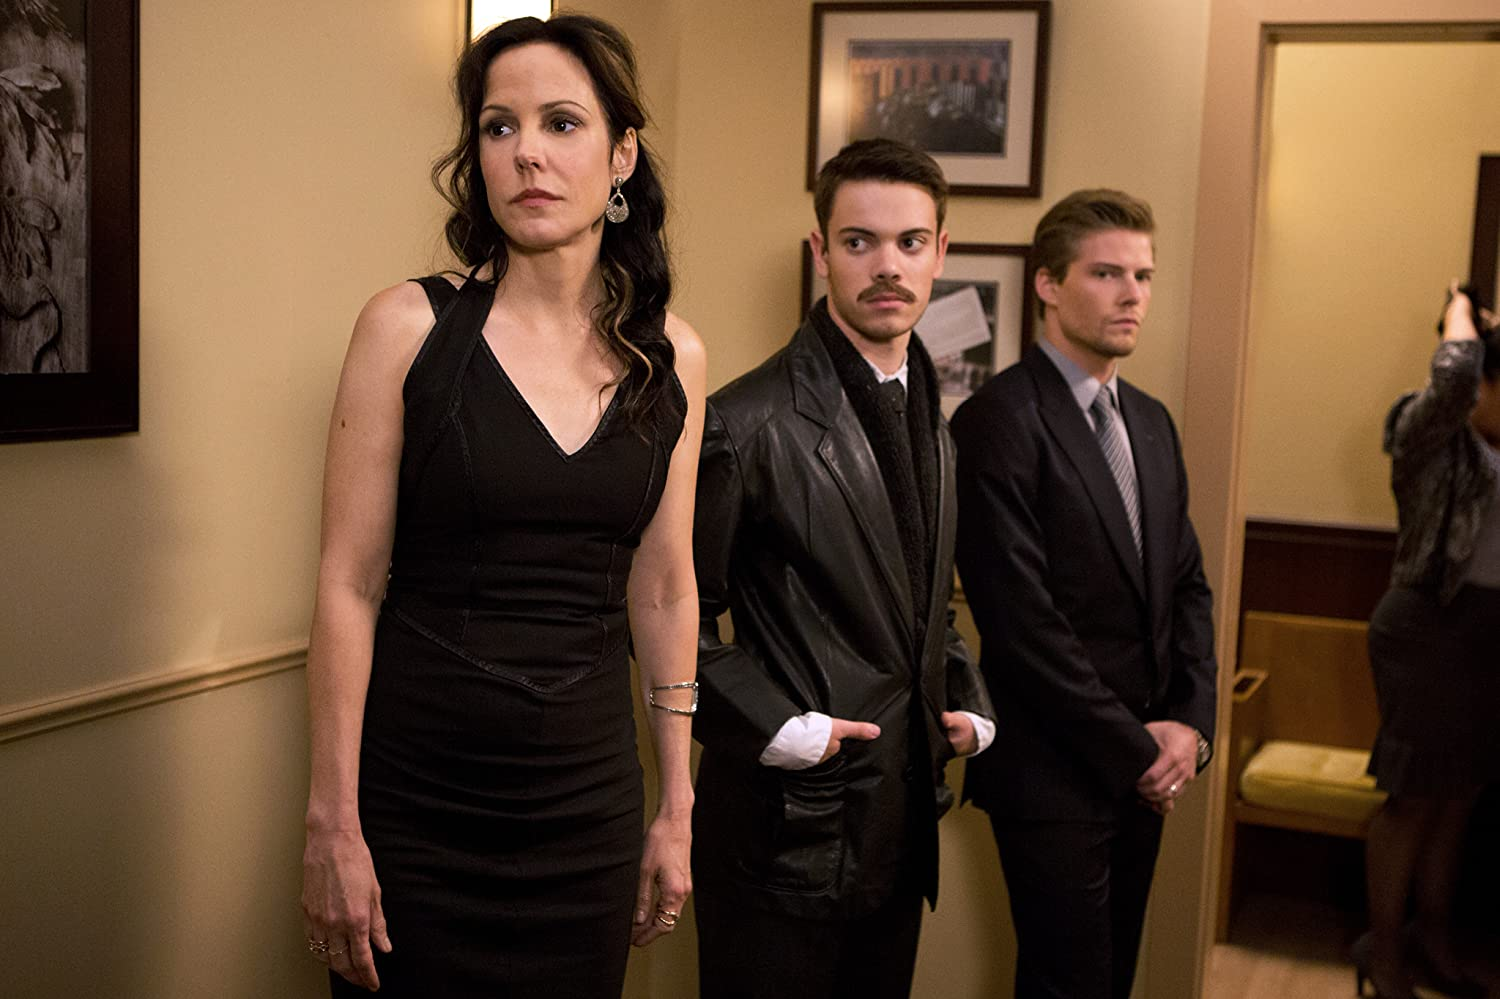 Nancy, Shane, and Silas stand in a hallway without facing each other in the Weeds finale